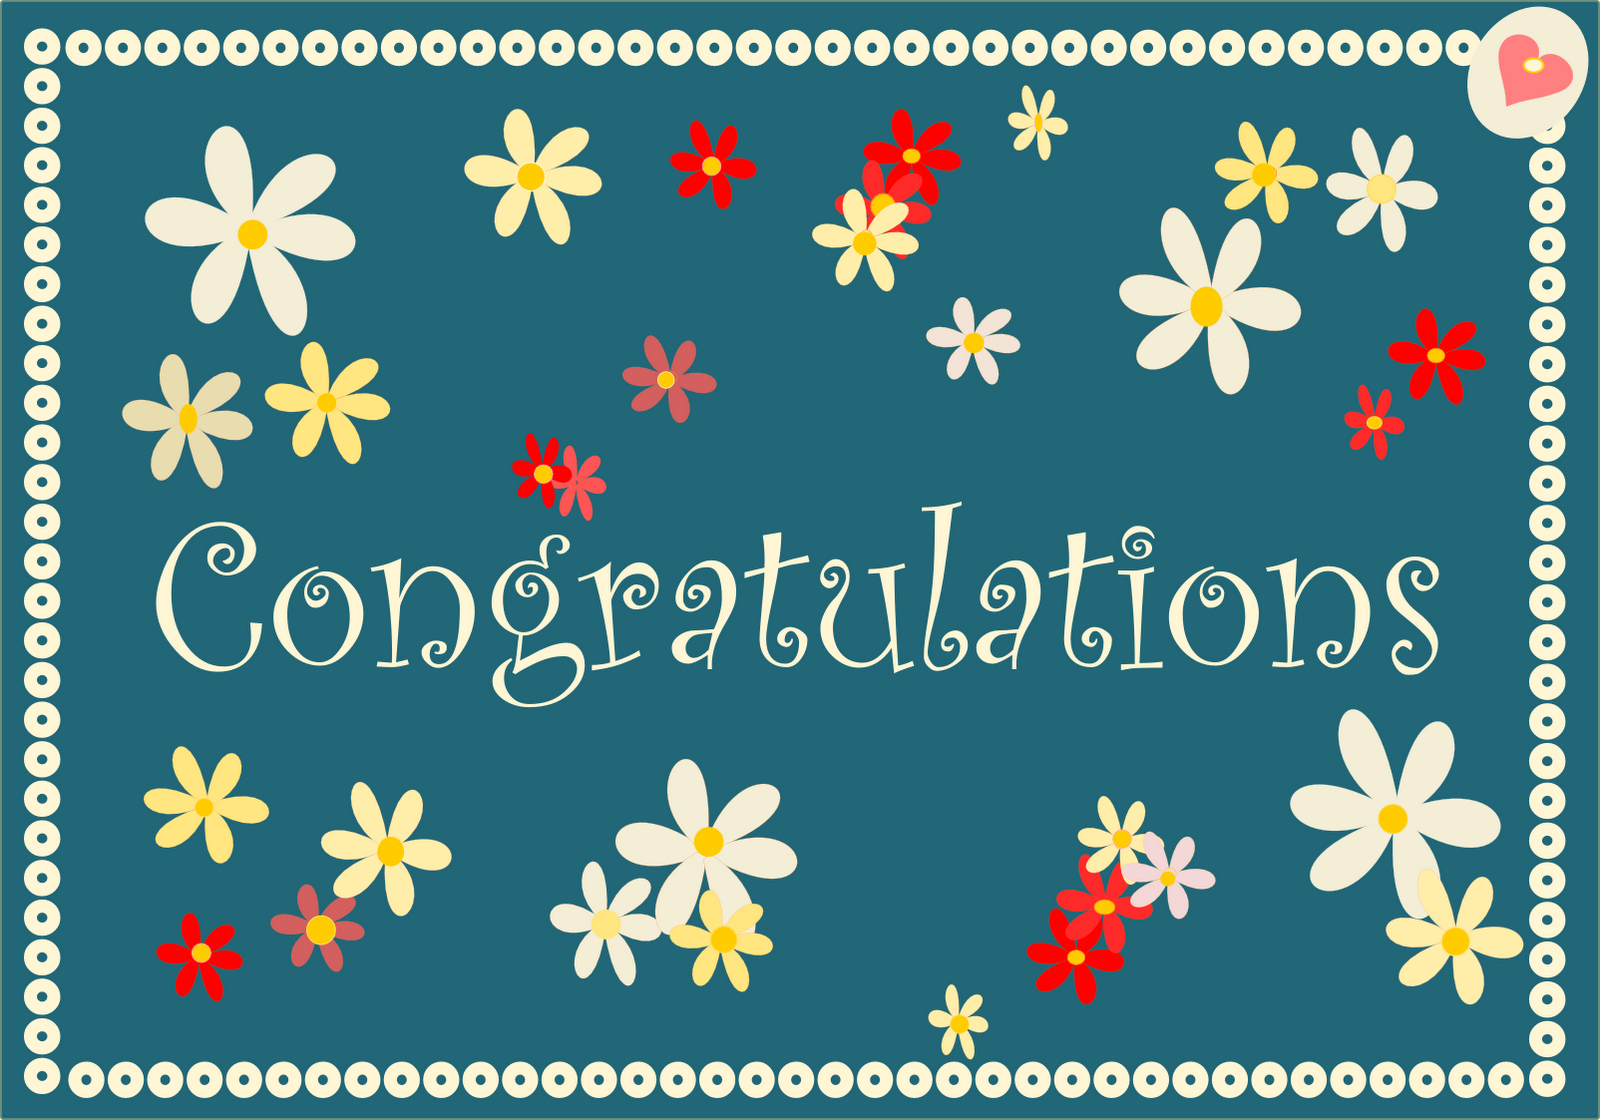 Great Free Printable Congratulations Cards U2013 Retro Colors Intended For Free Congratulation Cards